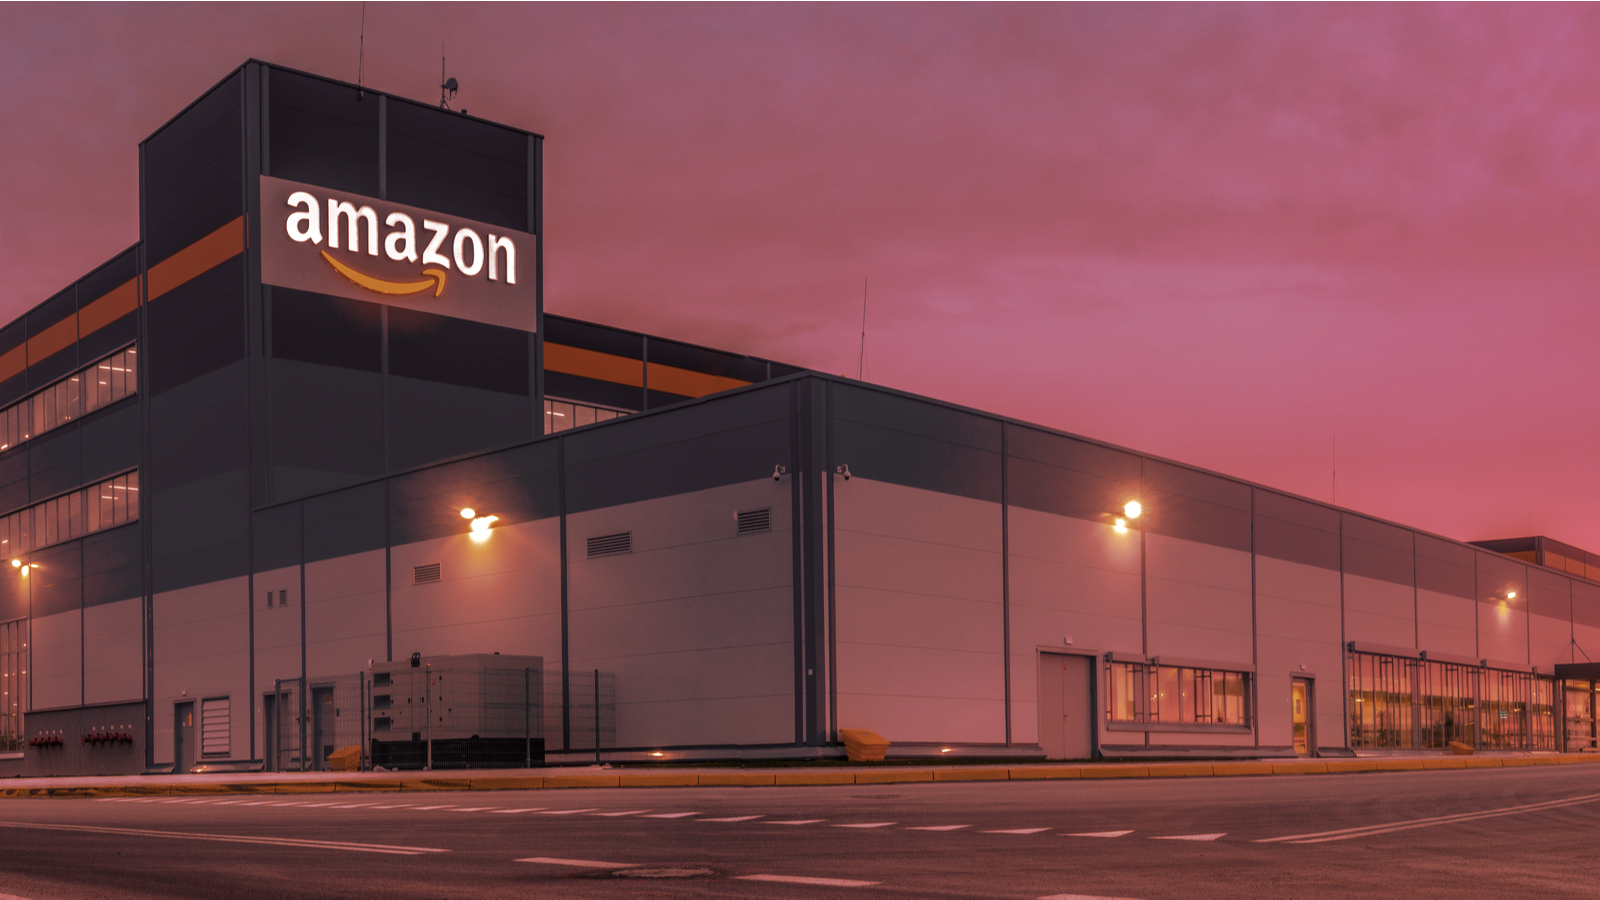 Amazon Says It's 'Exploring' Cryptocurrency Payments - Decrypt